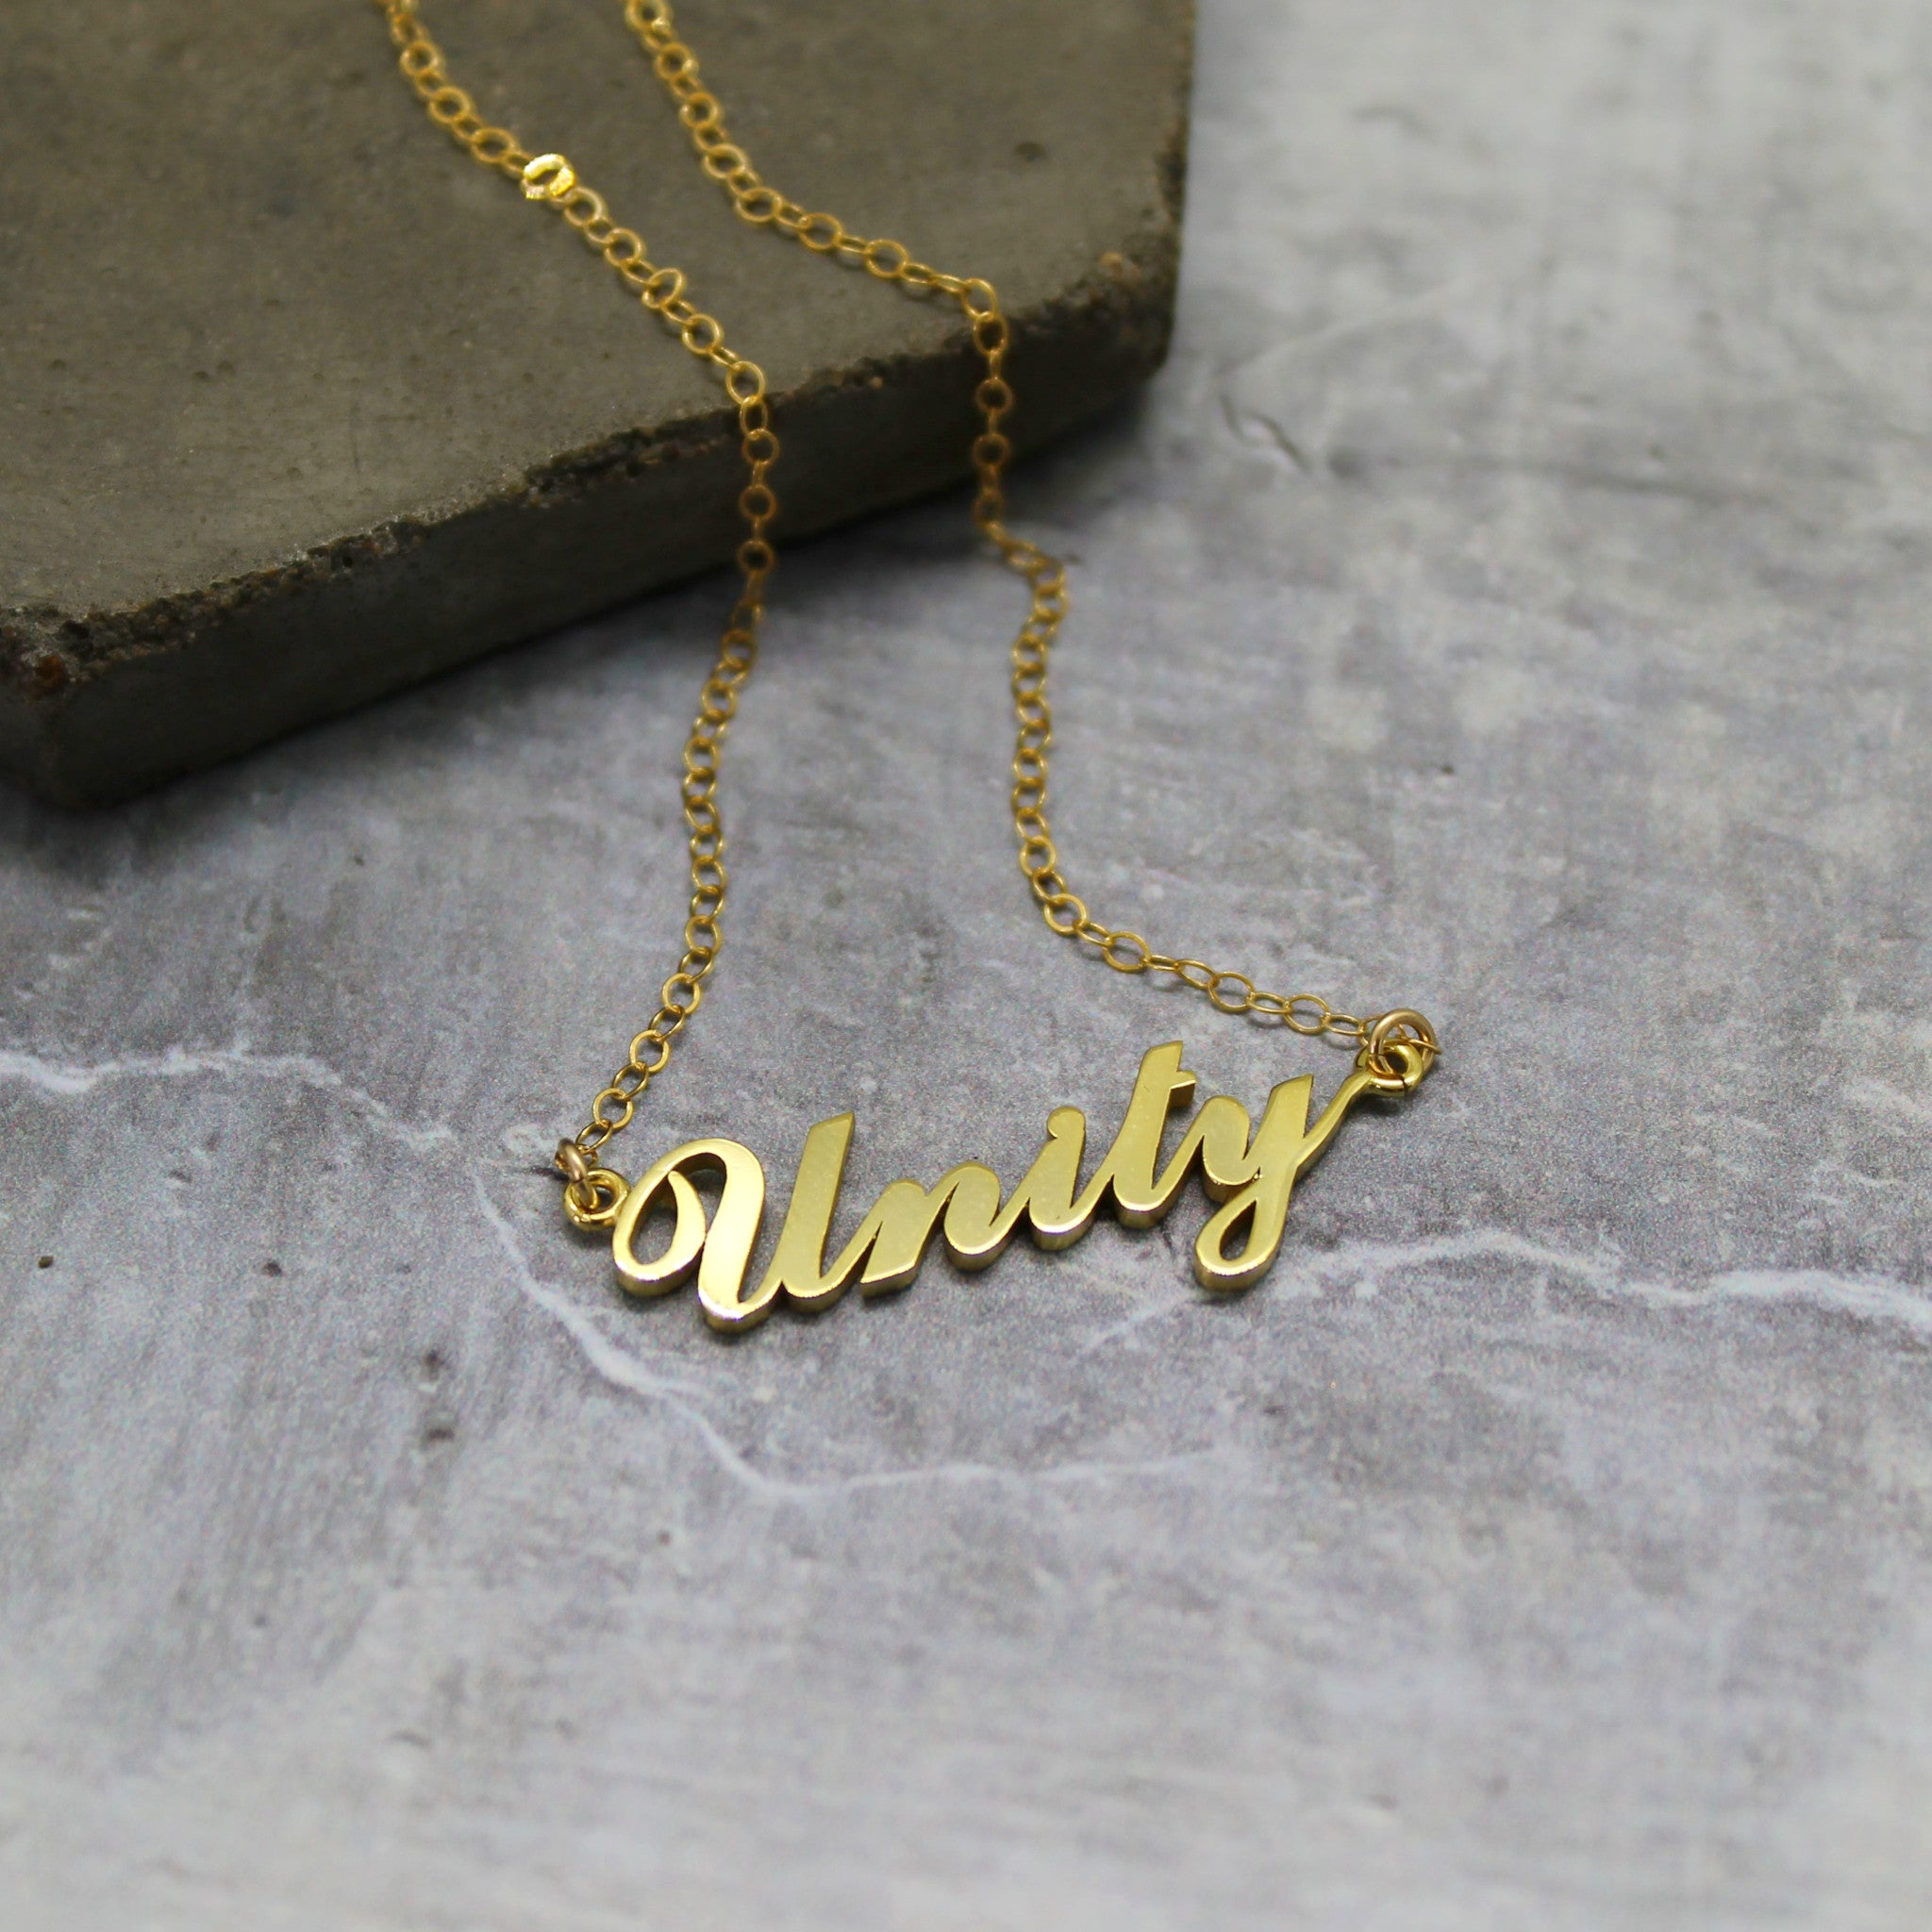 Gold Unity necklace - Mara studio